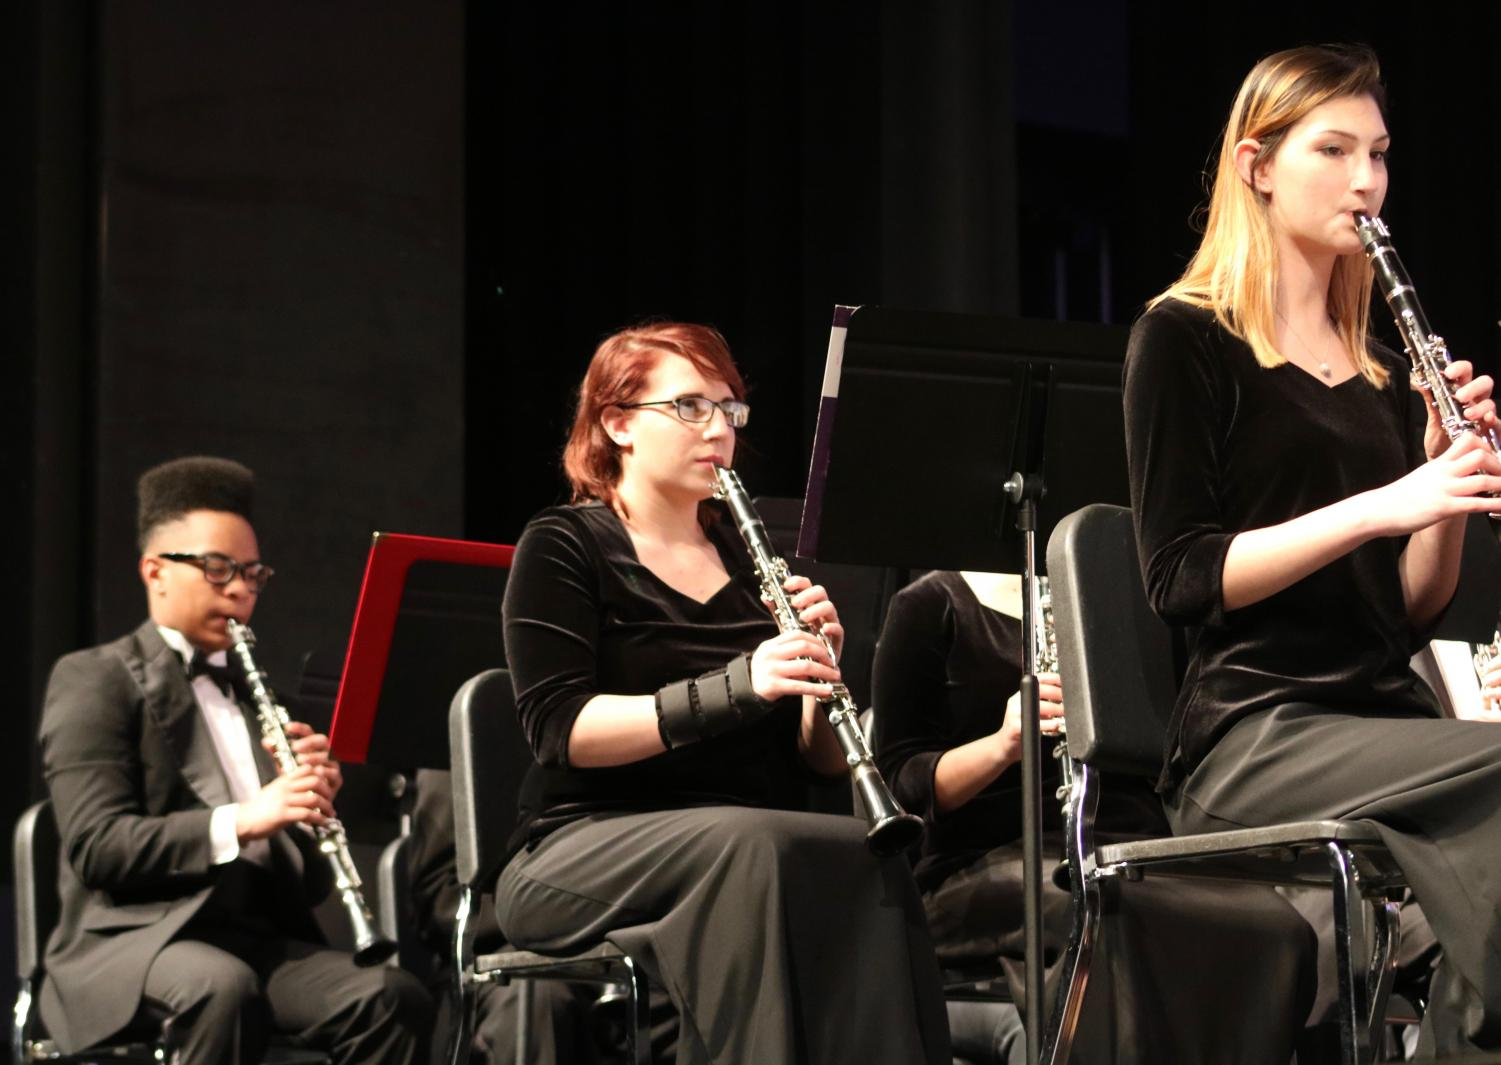 KHS+woodwind+band+members+perform+a+song.